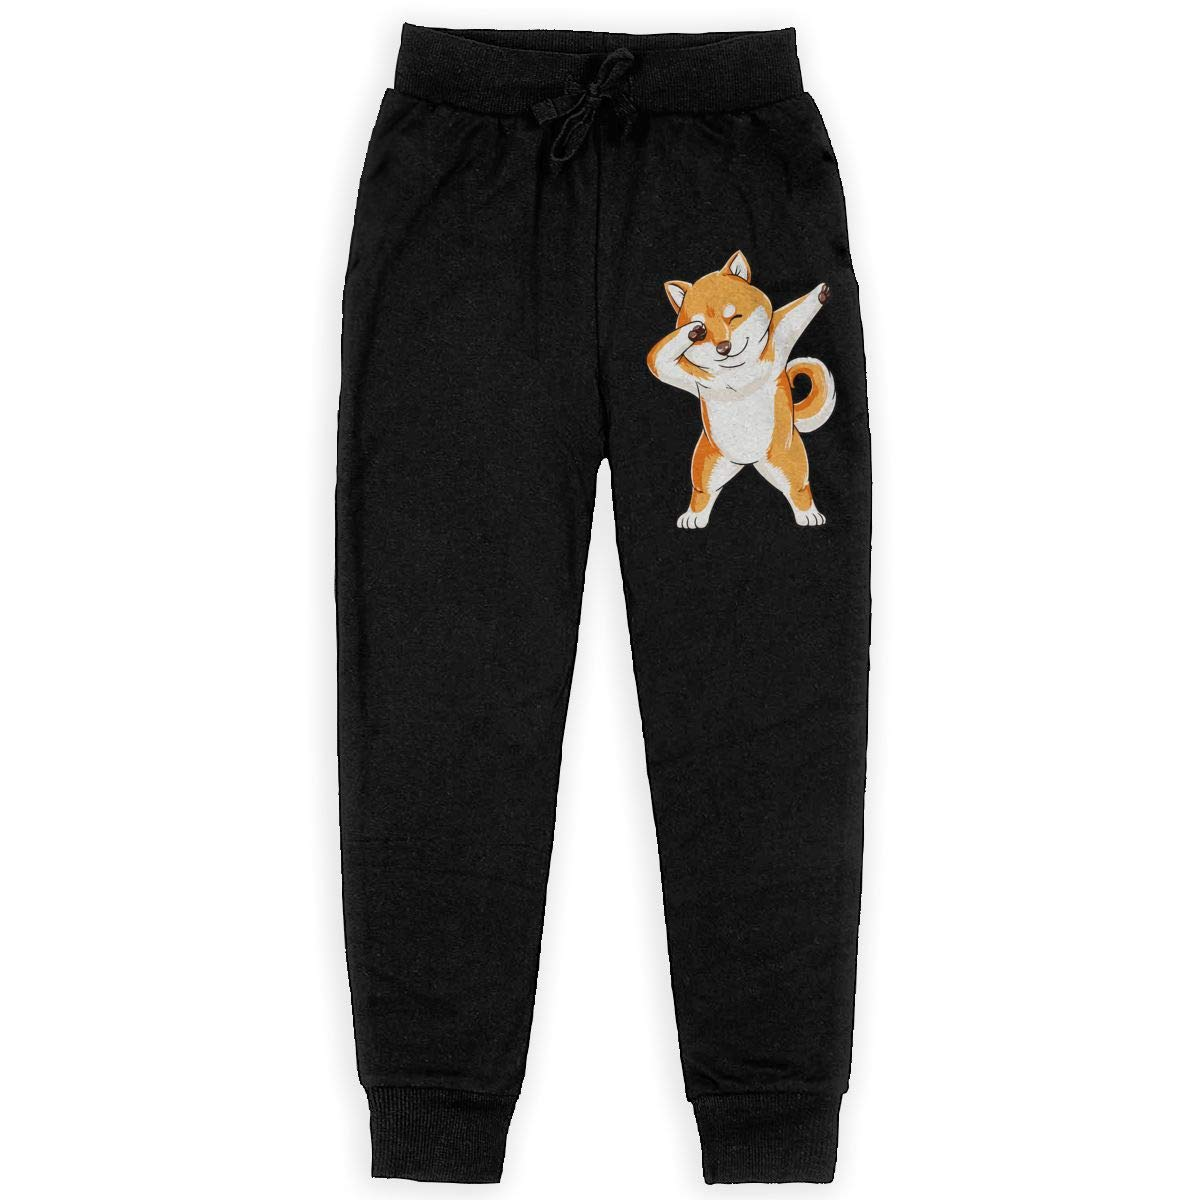 XHAKZM71 Teenagers Teen Girl Dabbing Doge Shiba Inu Printed Sweatpants Elastic Waist Active Pants